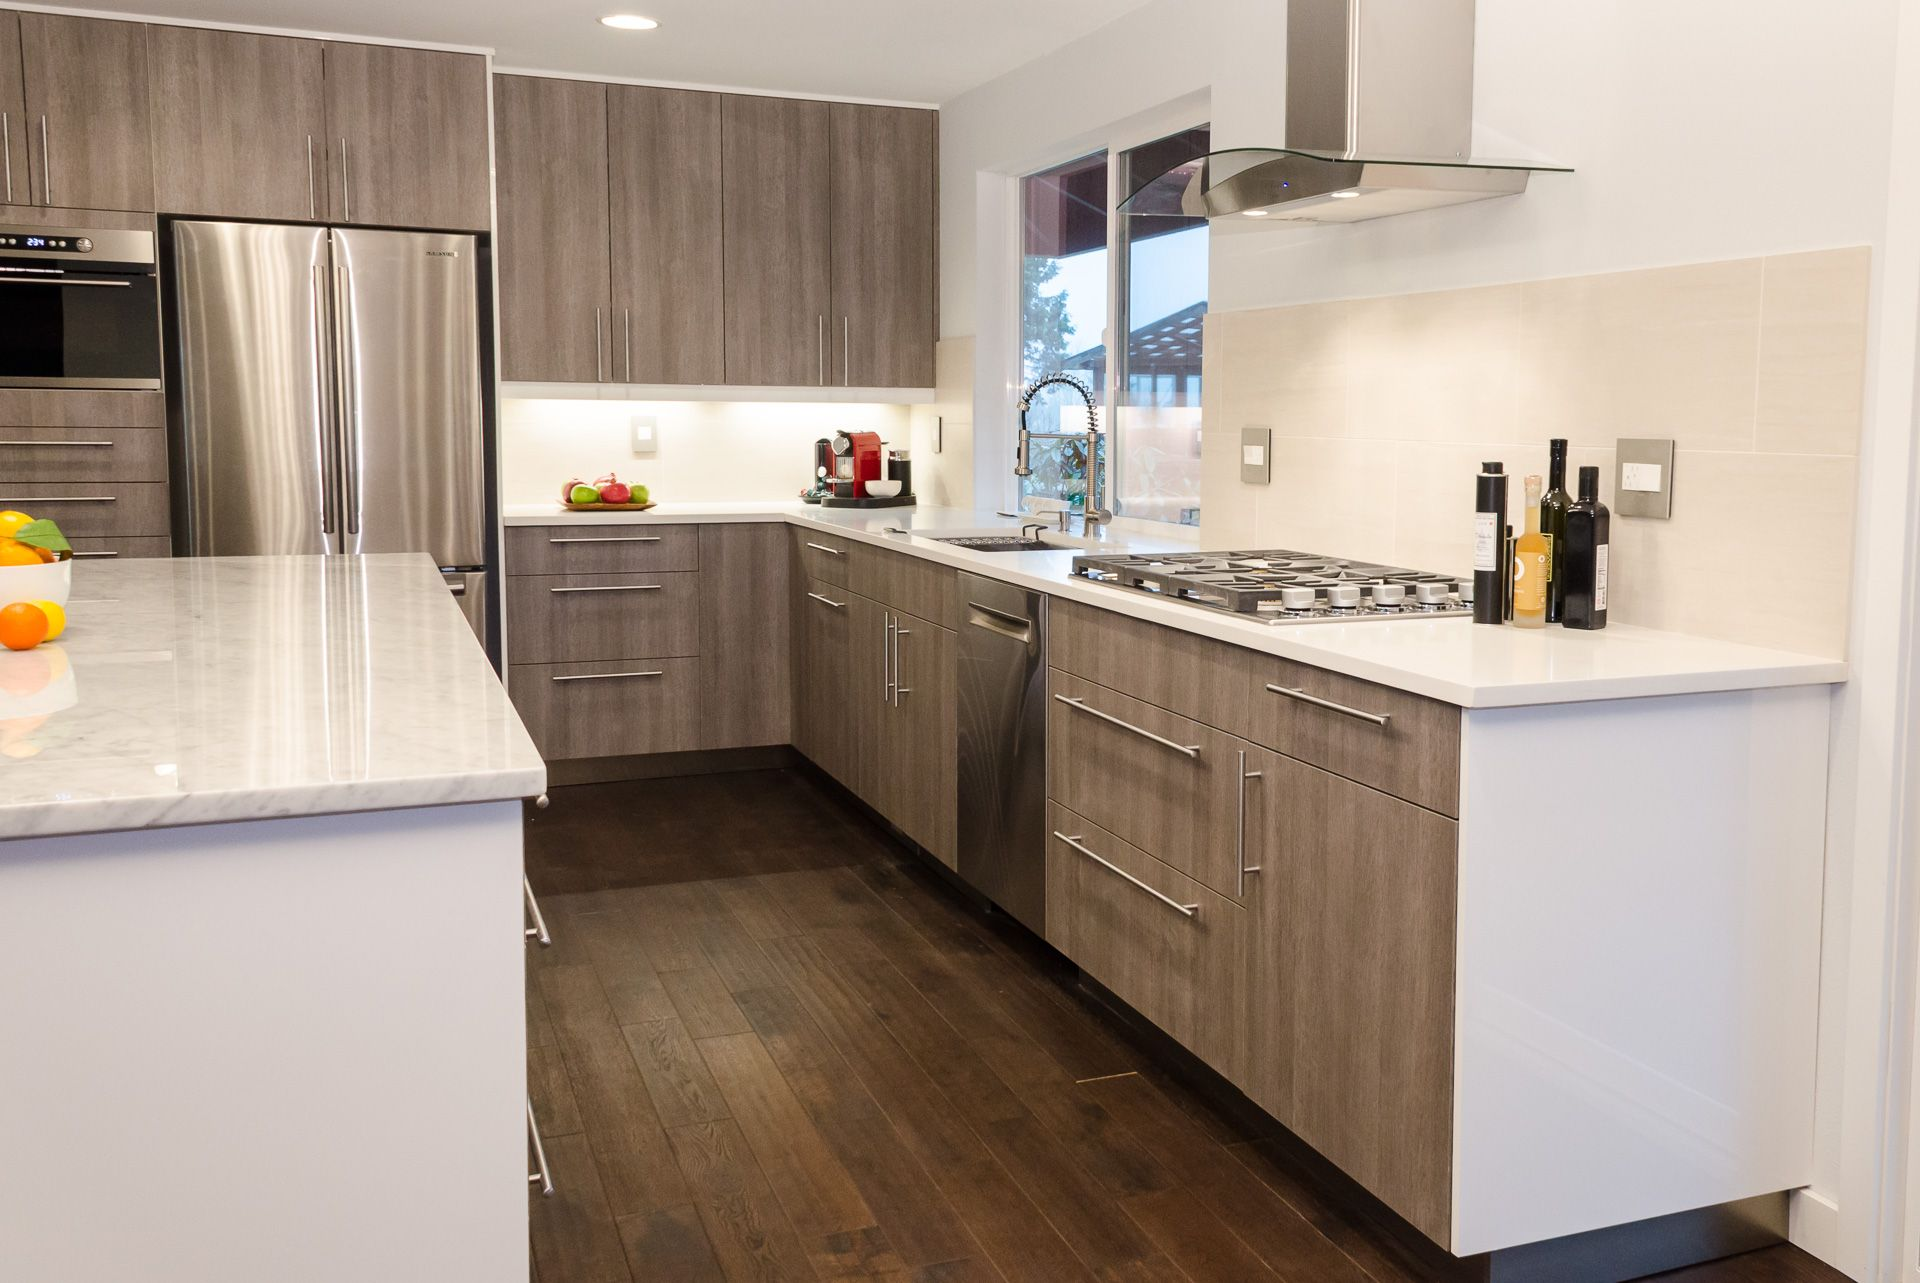 Custom Doors For Ikea Kitchen Cabinets Custom Doors Fronts Ikea Inspiration Kitchen Pinterest